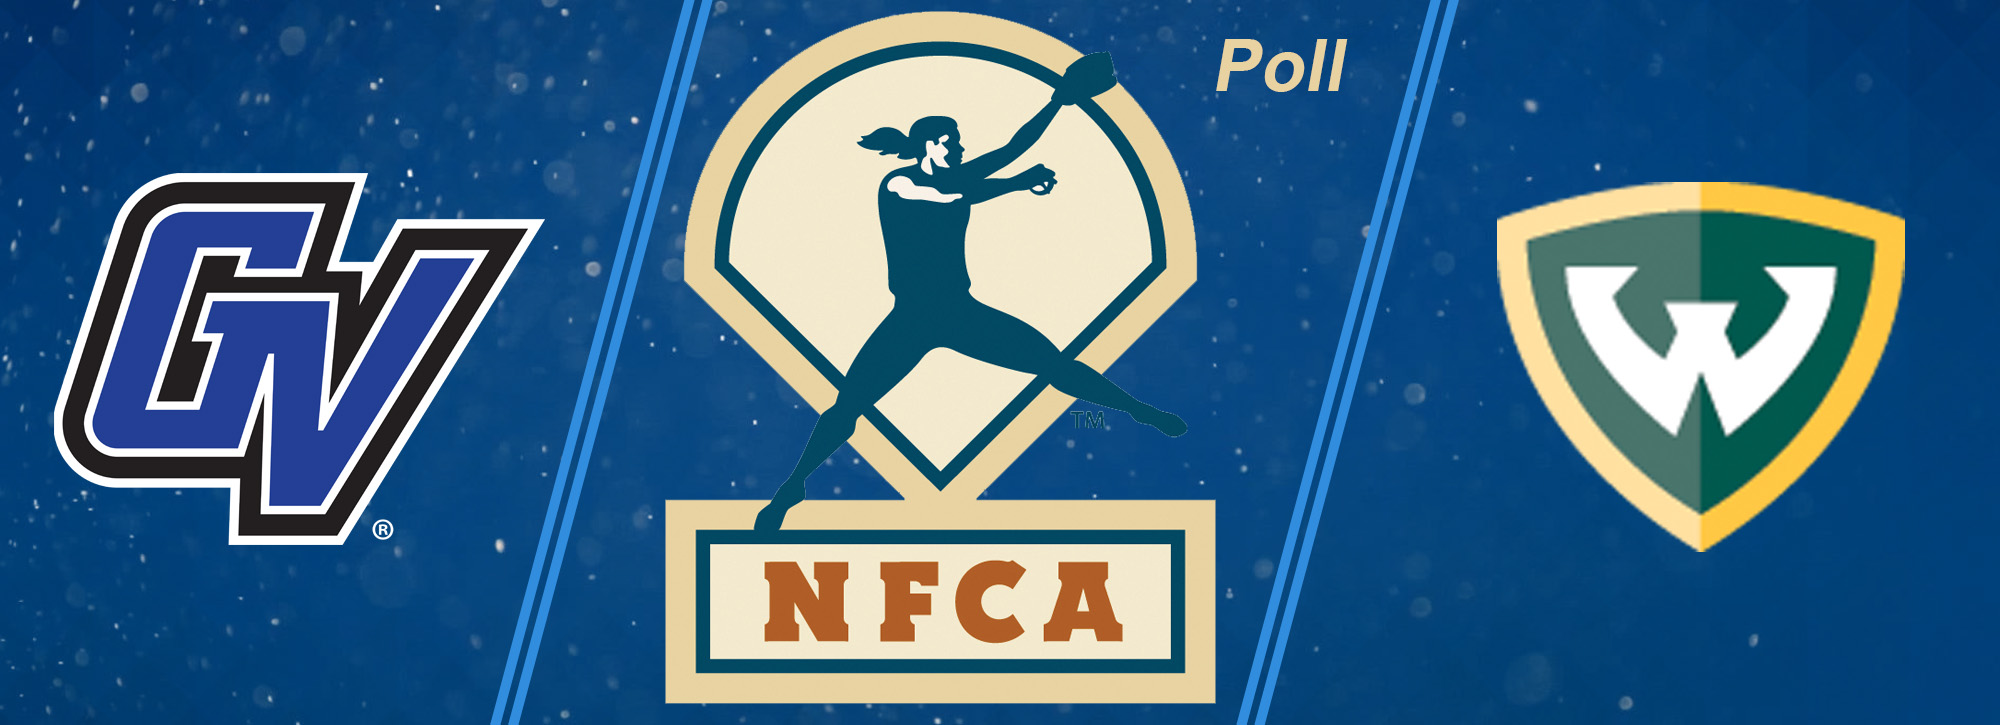 Lakers are ranked 16th in NFCA Pre-Season Coaches' Poll